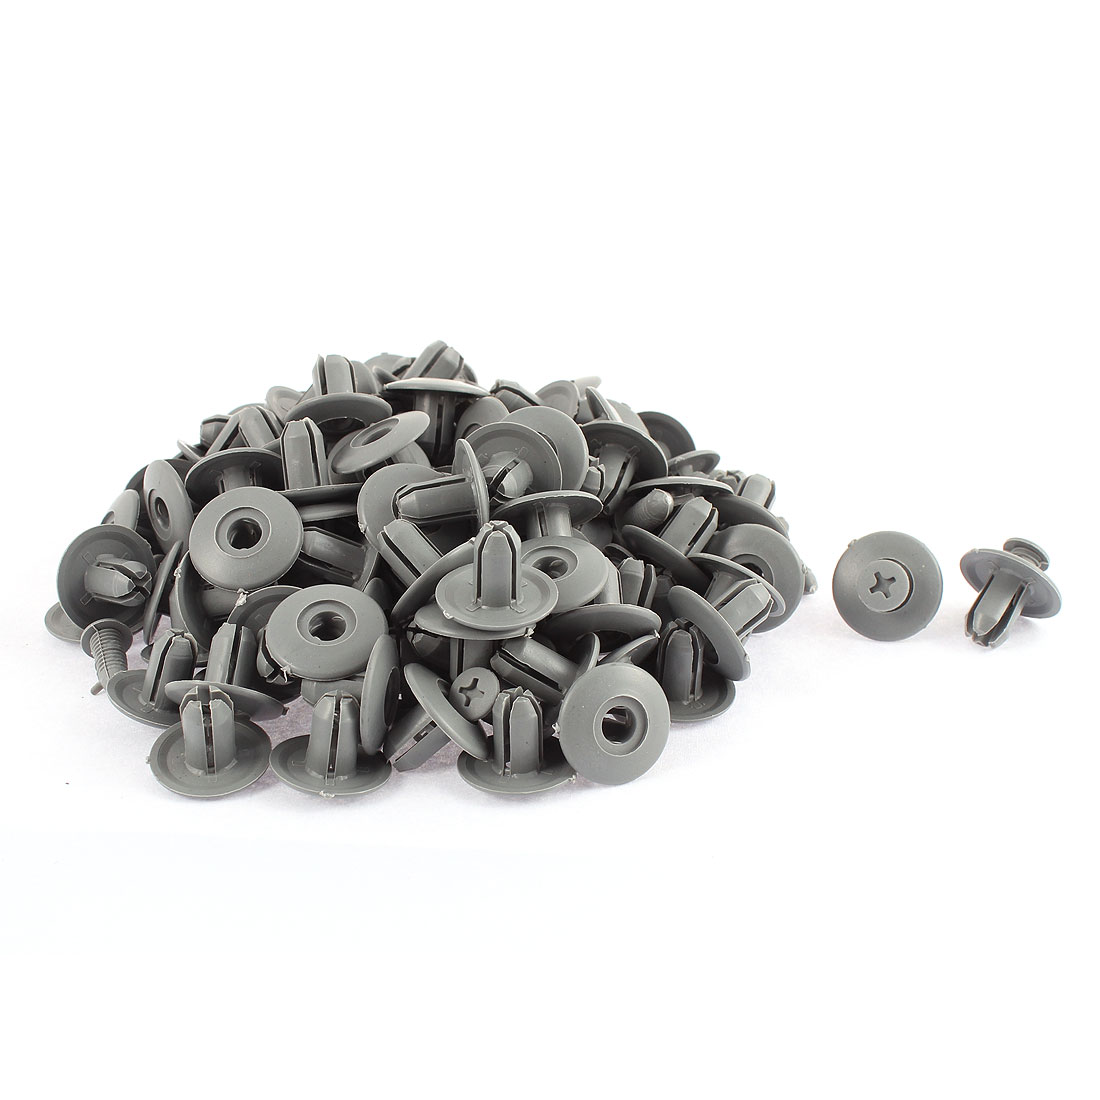 100 Pcs Gray Plastic Screw Rivet Lining Trim Panel Retainer Fastener Clips